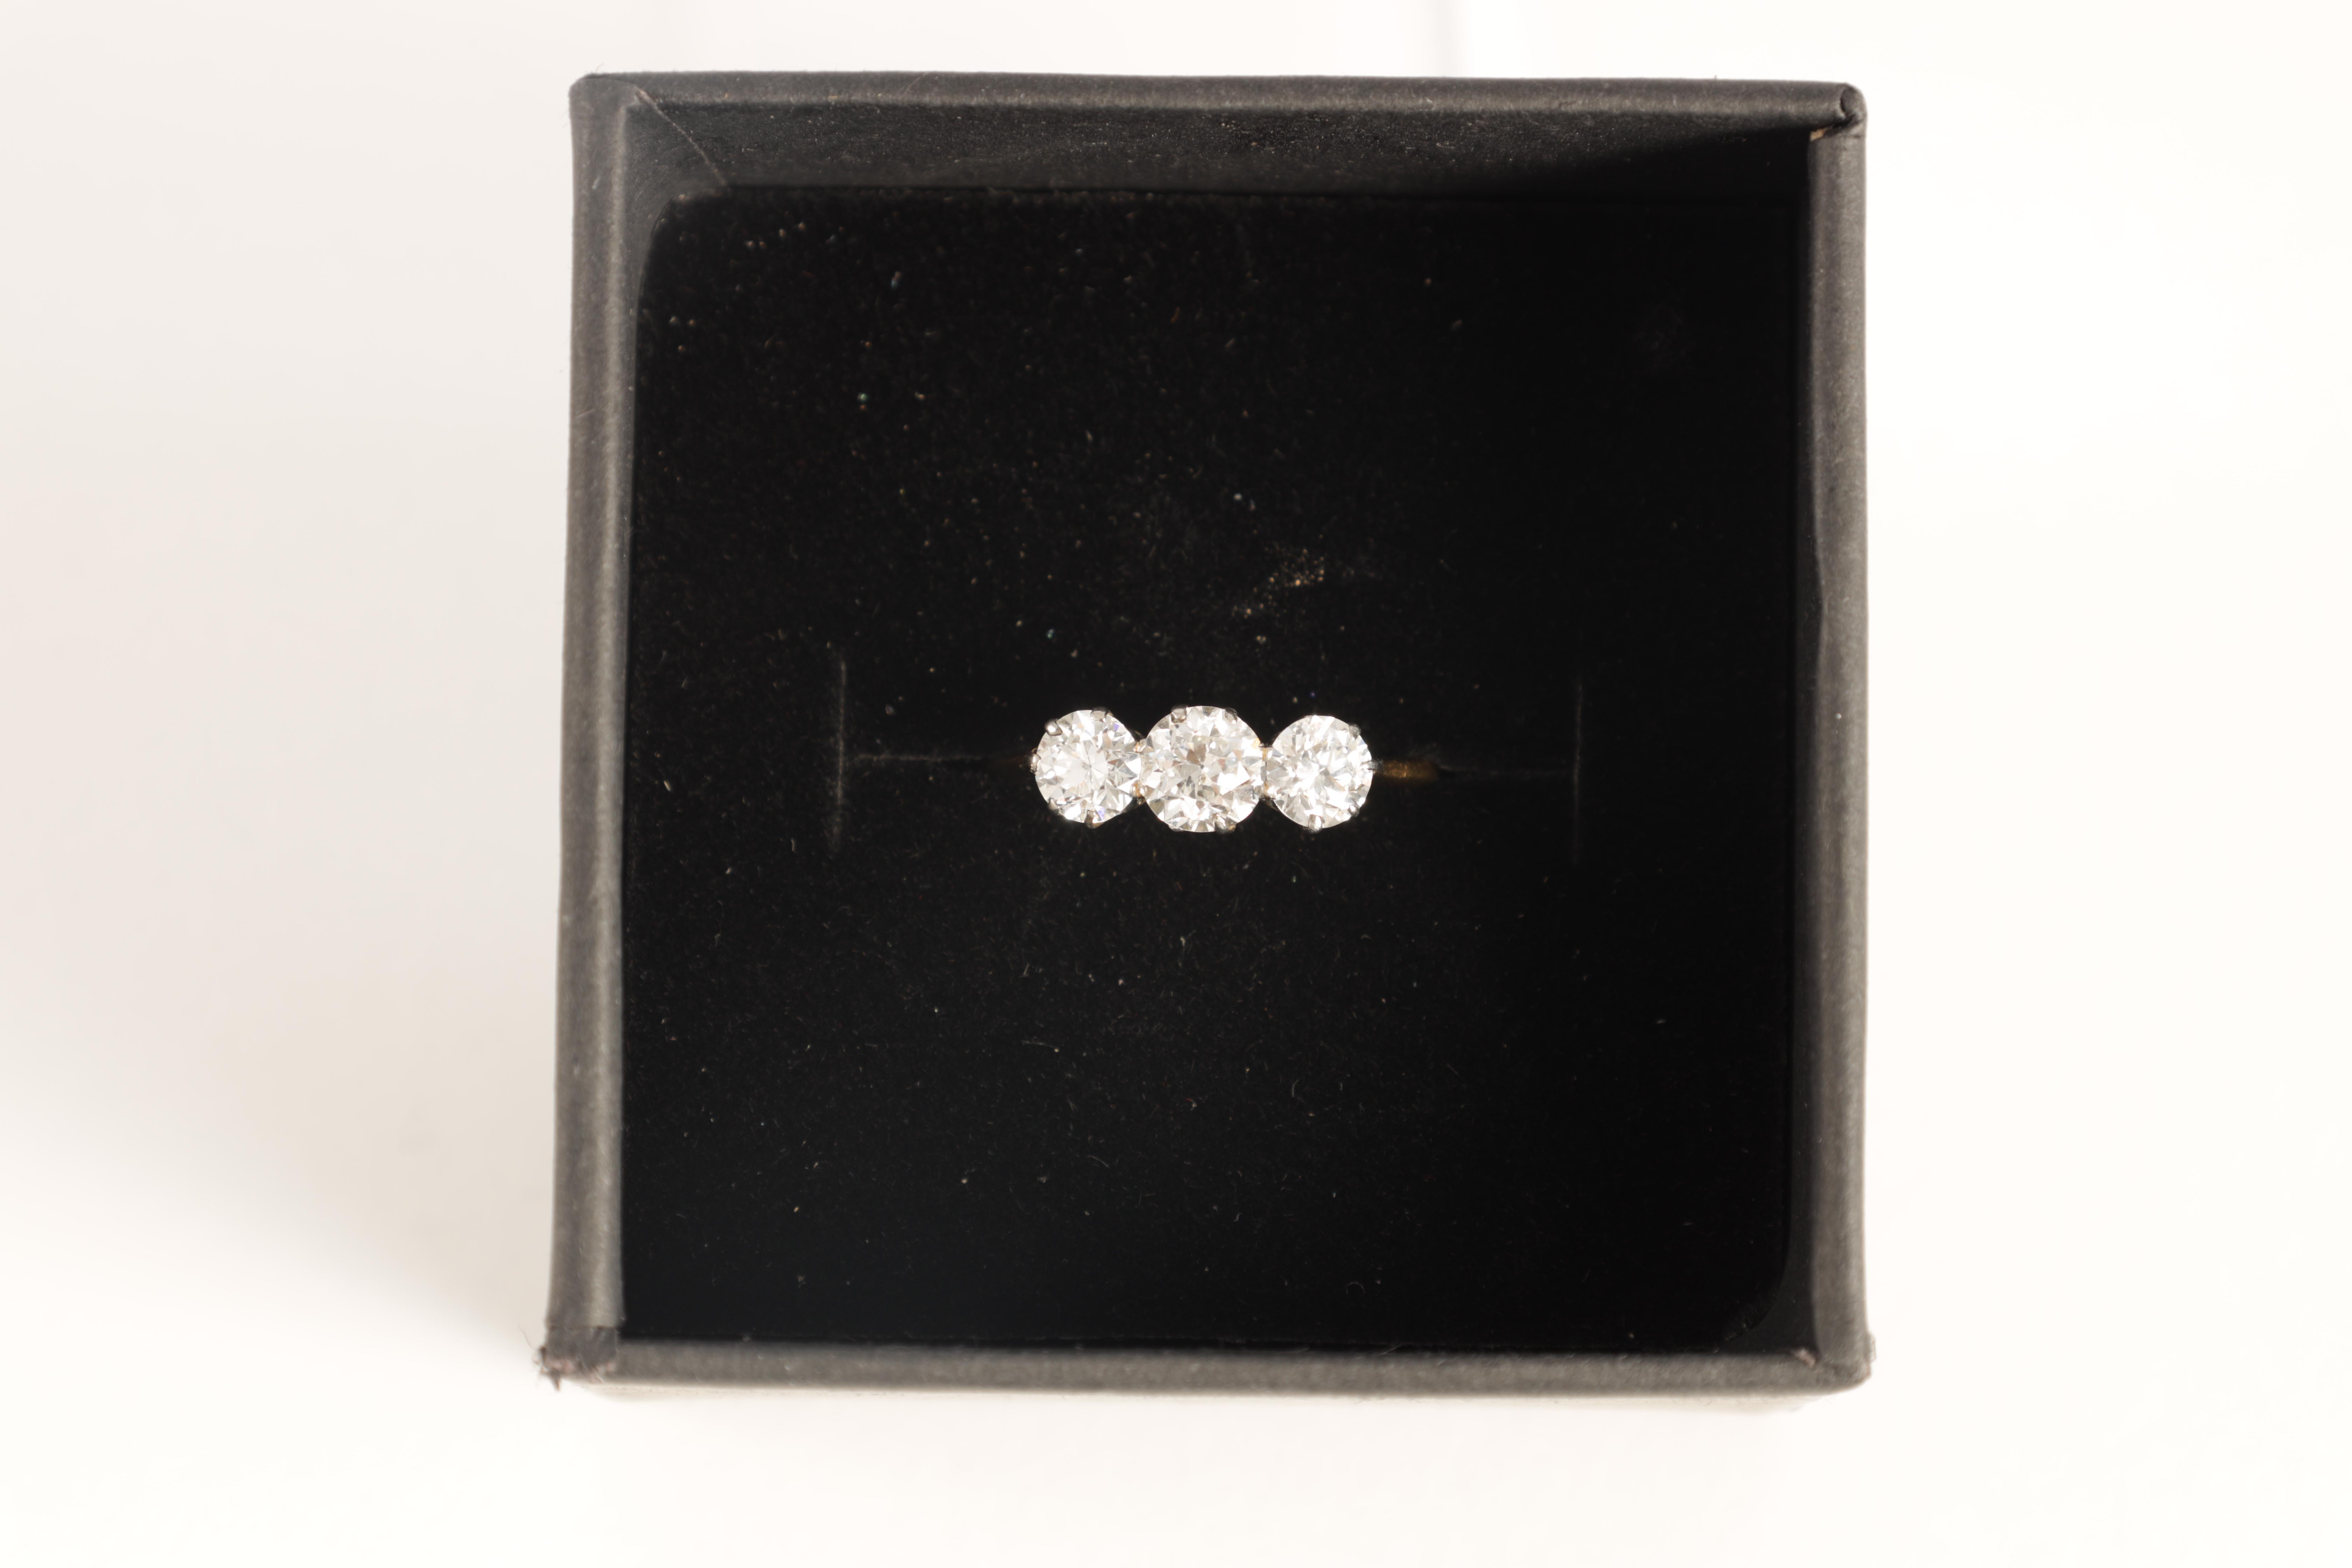 A LADIES THREE STONE DIAMOND RING on an 18ct gold shank, app. 1.2cts. of diamonds, clarity SI2, - Image 5 of 5